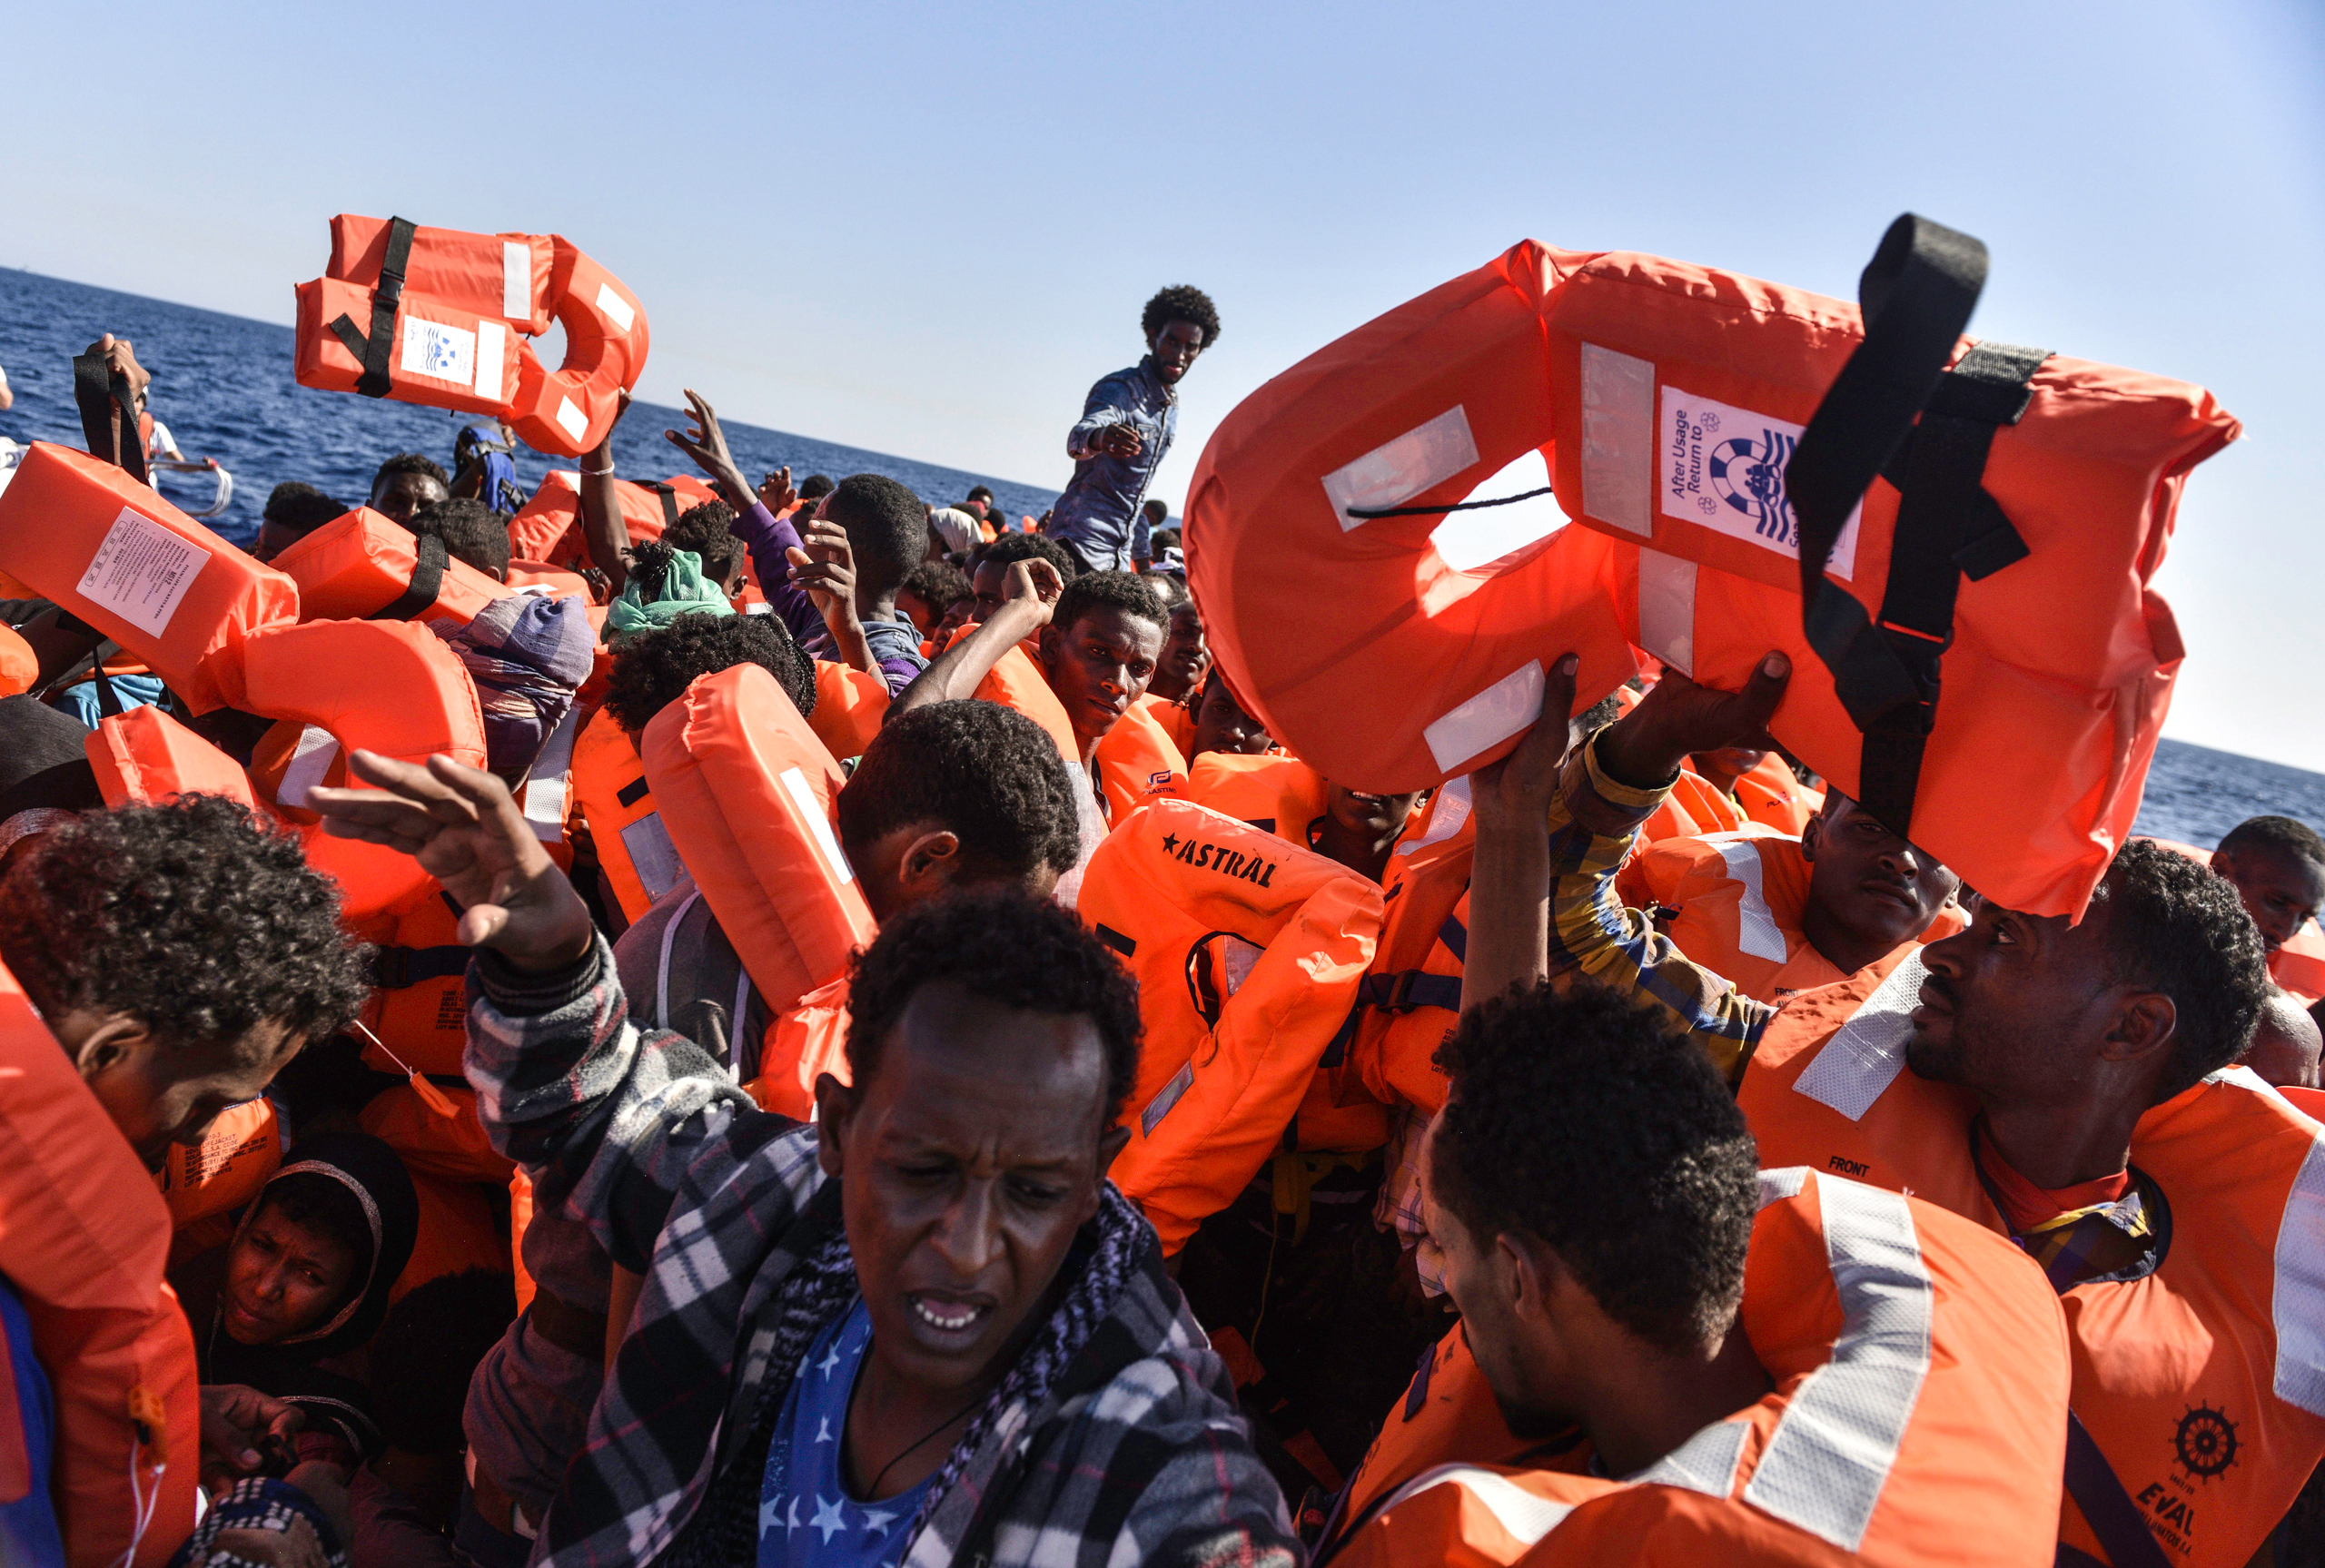 Migrants pass the life jackets being handed out by the search-and-rescue teams with Médecins Sans Frontières and SOS Méditerranée off the coast of Libya, Aug. 21, 2016.